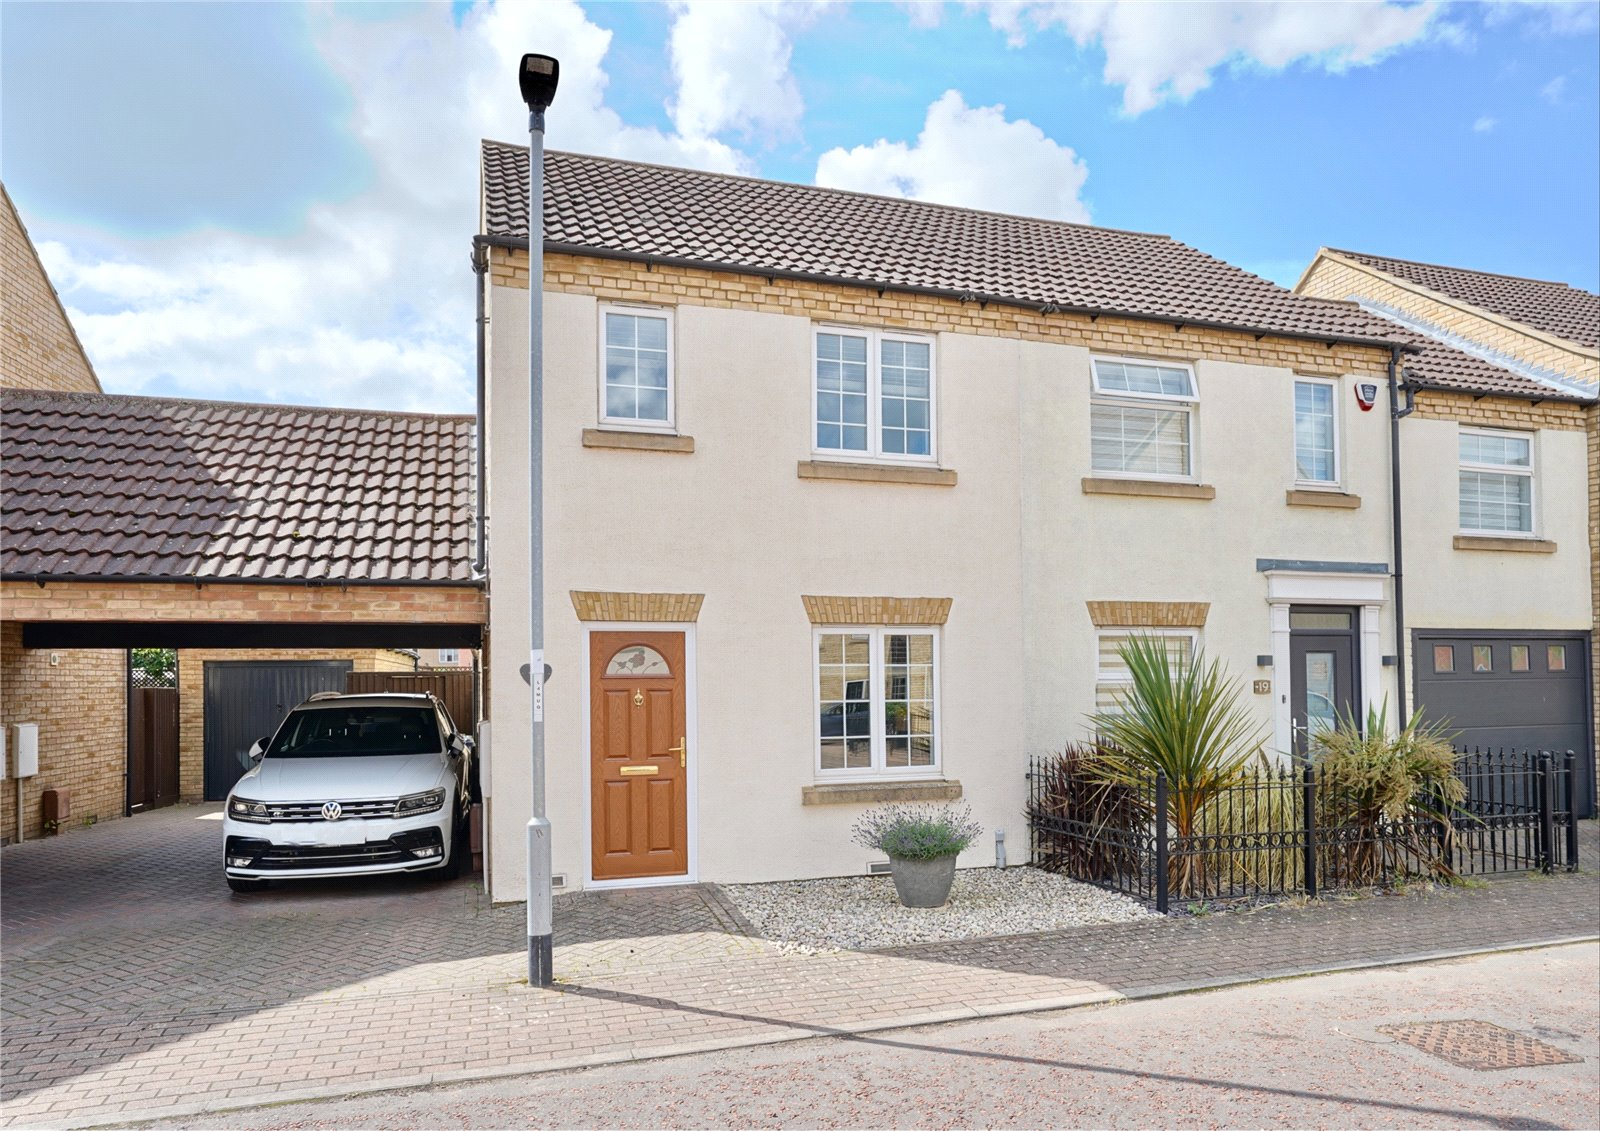 2 bed house for sale in Ream Close, Eynesbury - Property Image 1